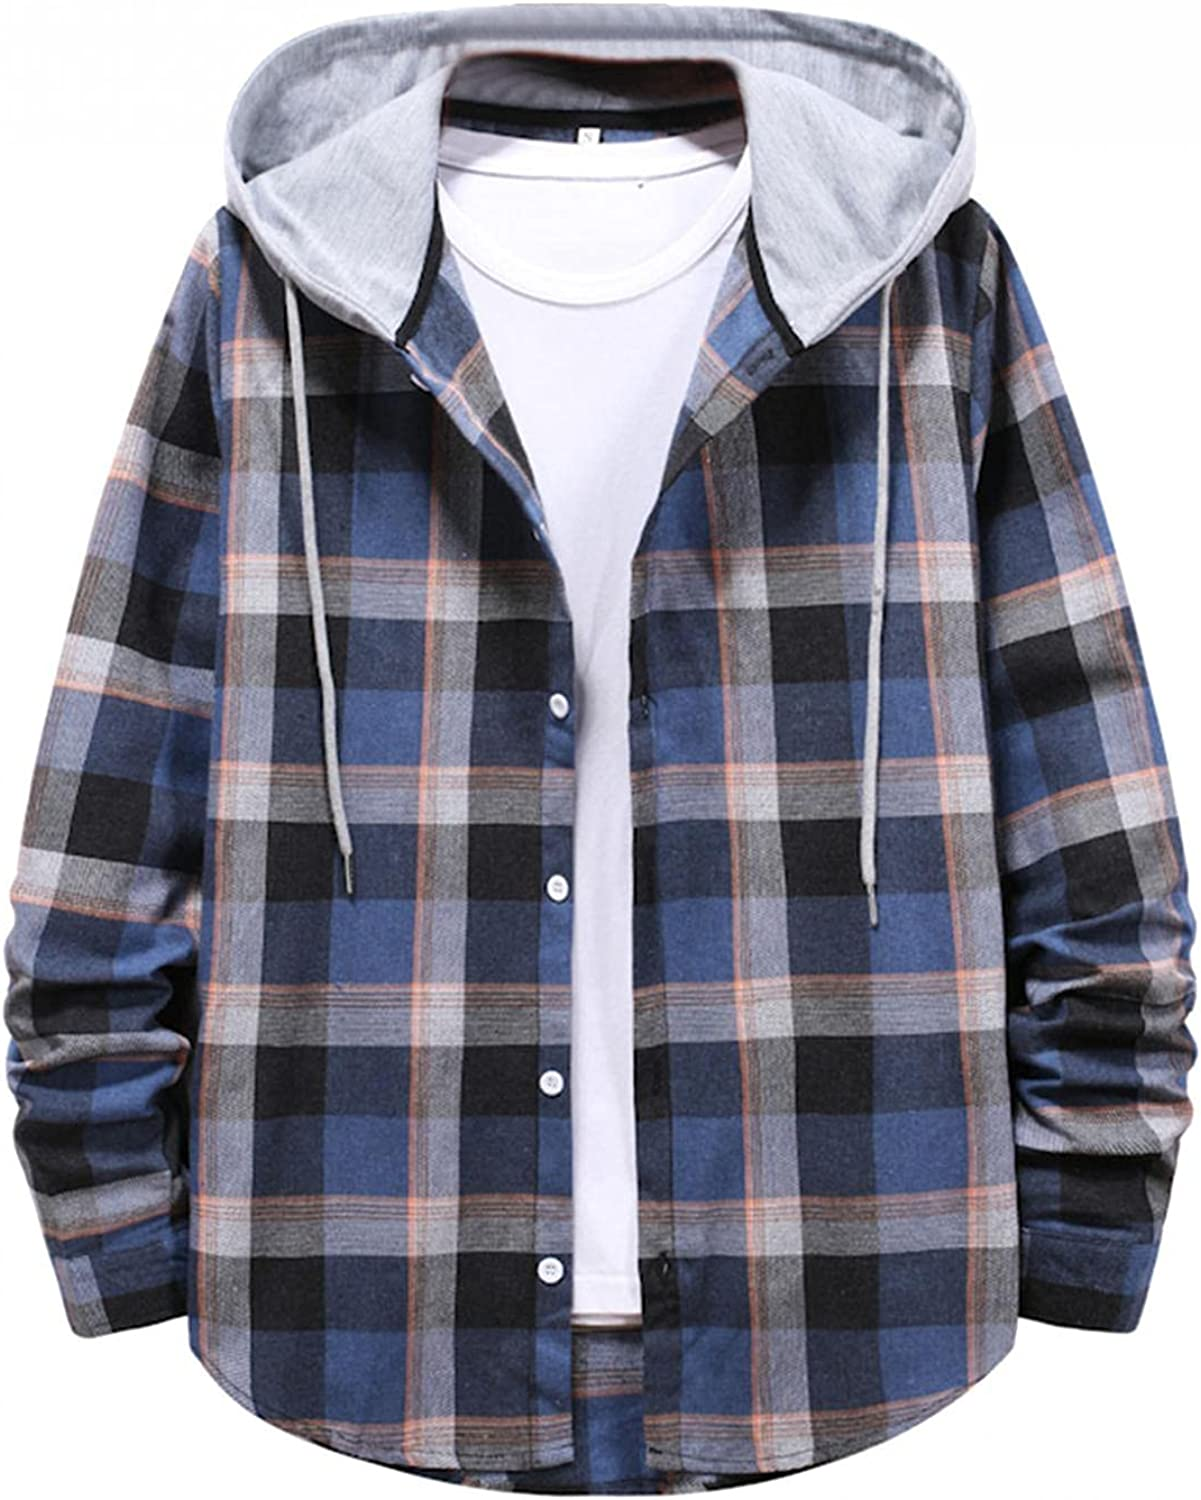 LEIYAN Mens Plaid Hooded Jackets Long Sleeve Lightweight Casual Flannel Lined Button Down Warm Anorak Coat Outwear